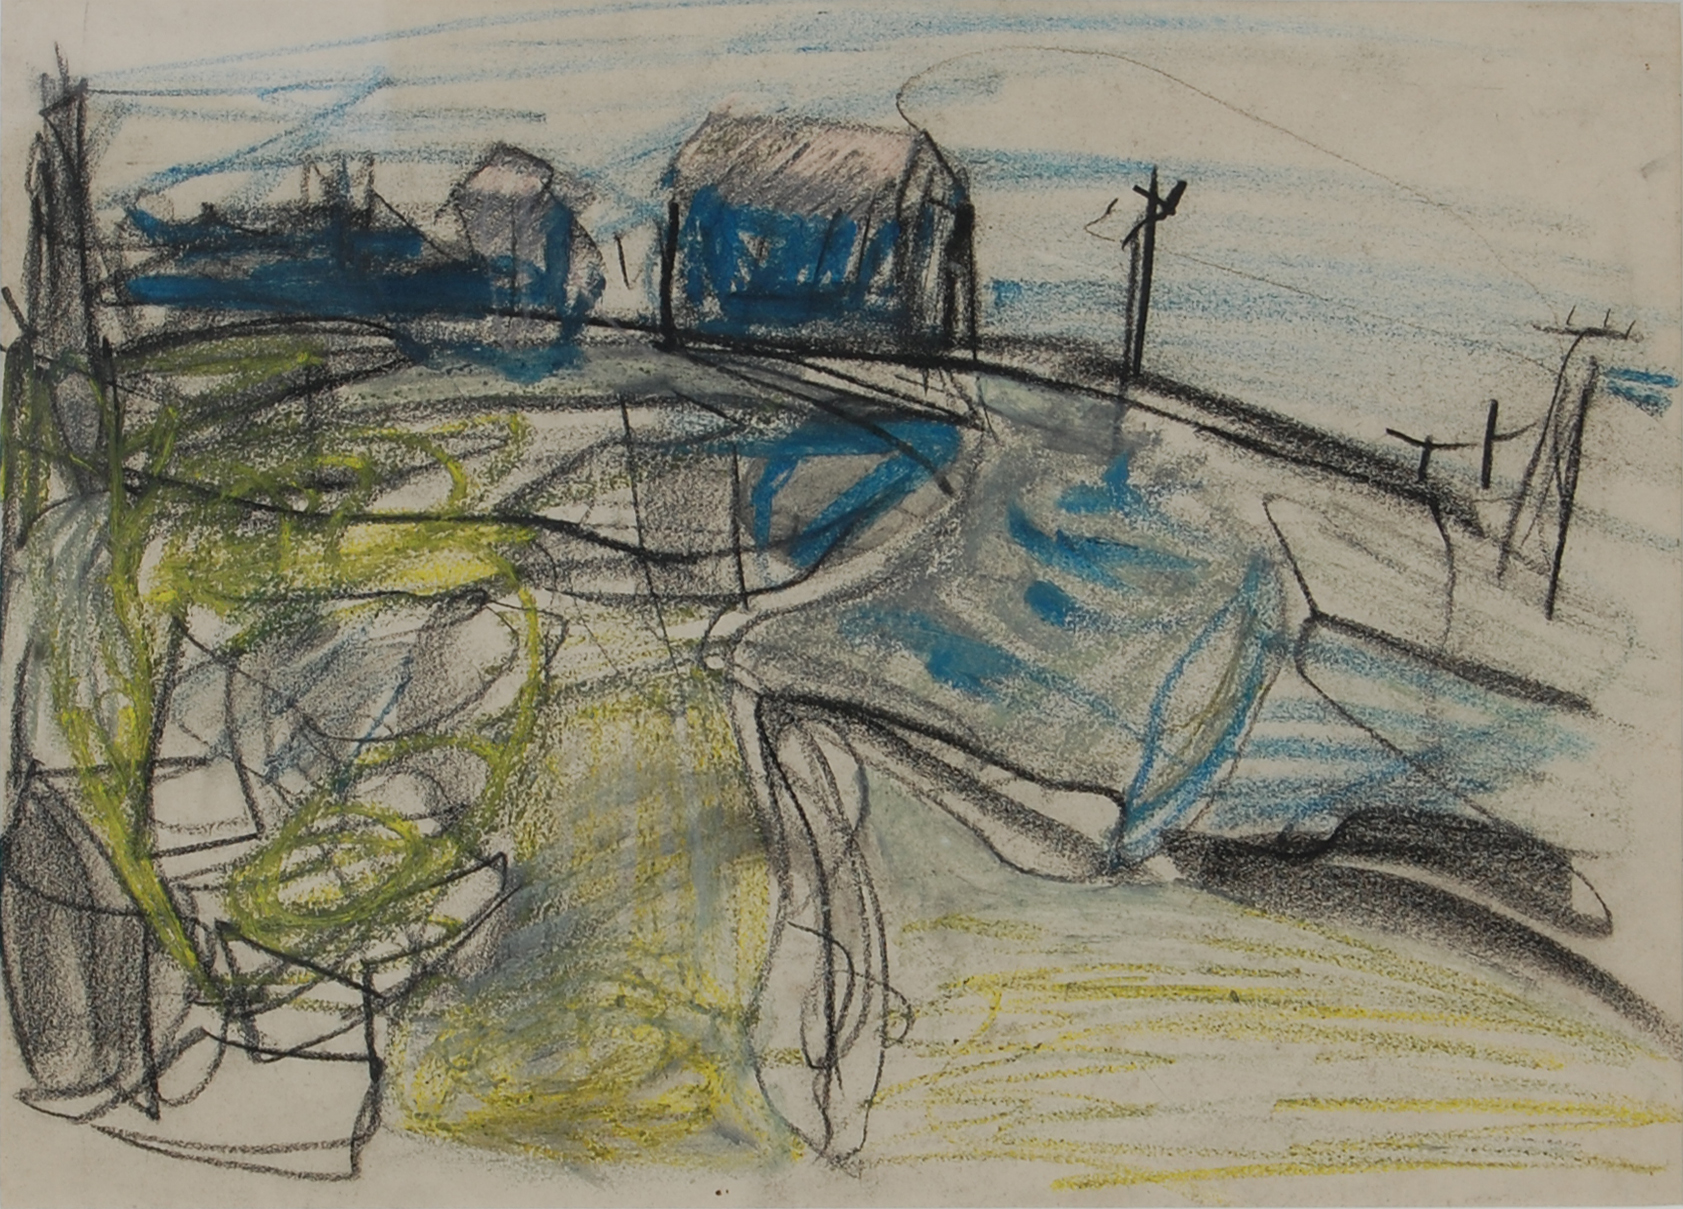 Peter Lanyon, Study for St Just, 1952, courtesy Belgrave St. Ives